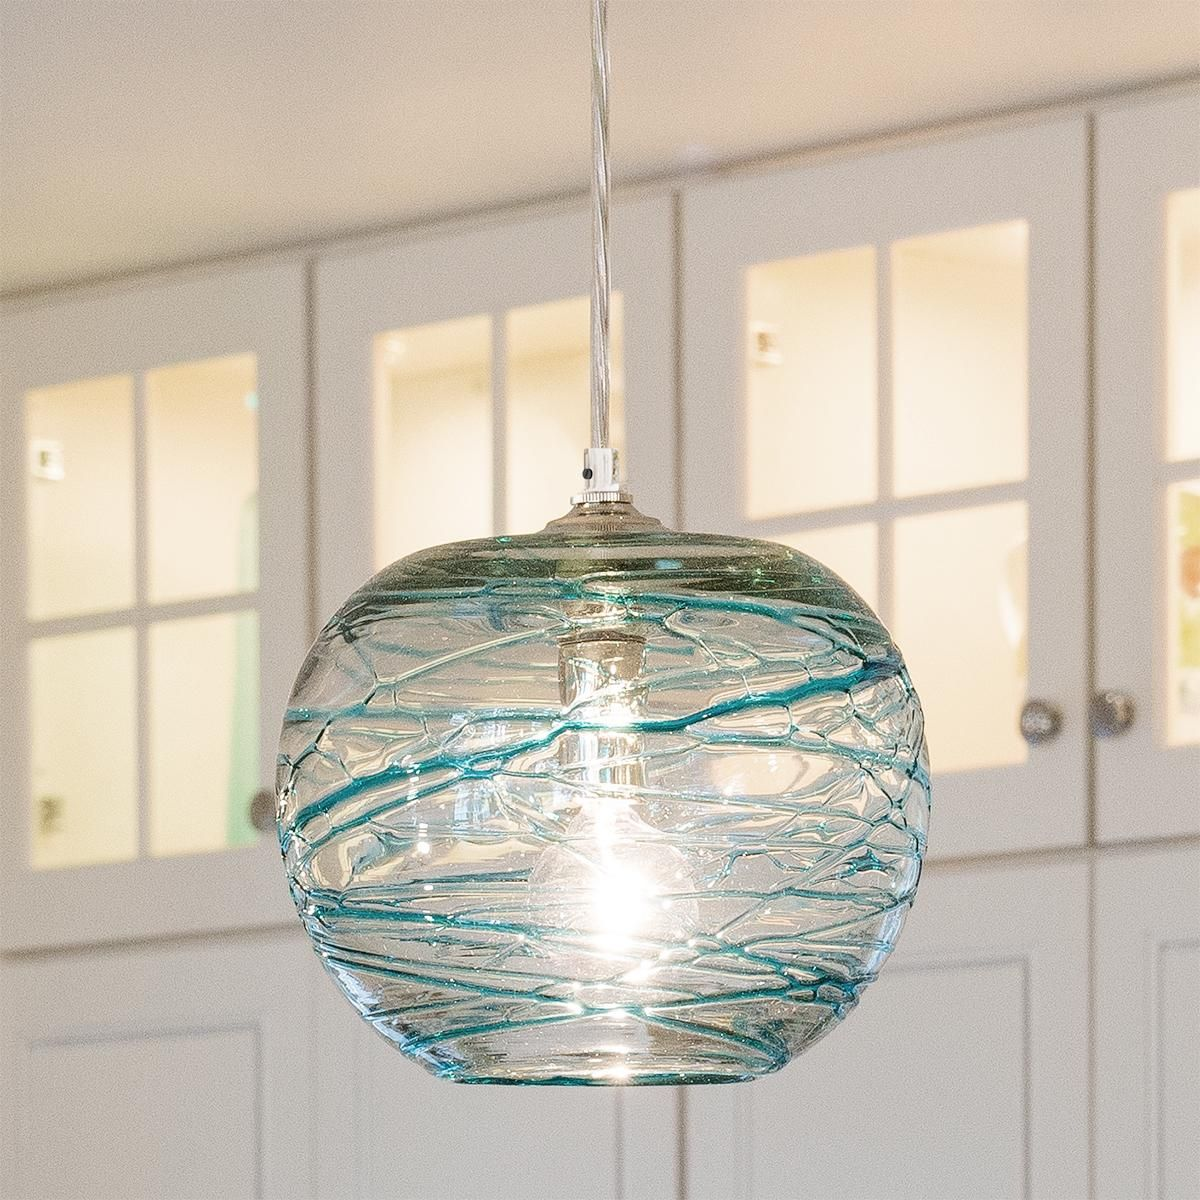 Swirling Glass Globe Mini Pendant Light | Mini pendant lights, Mini ...